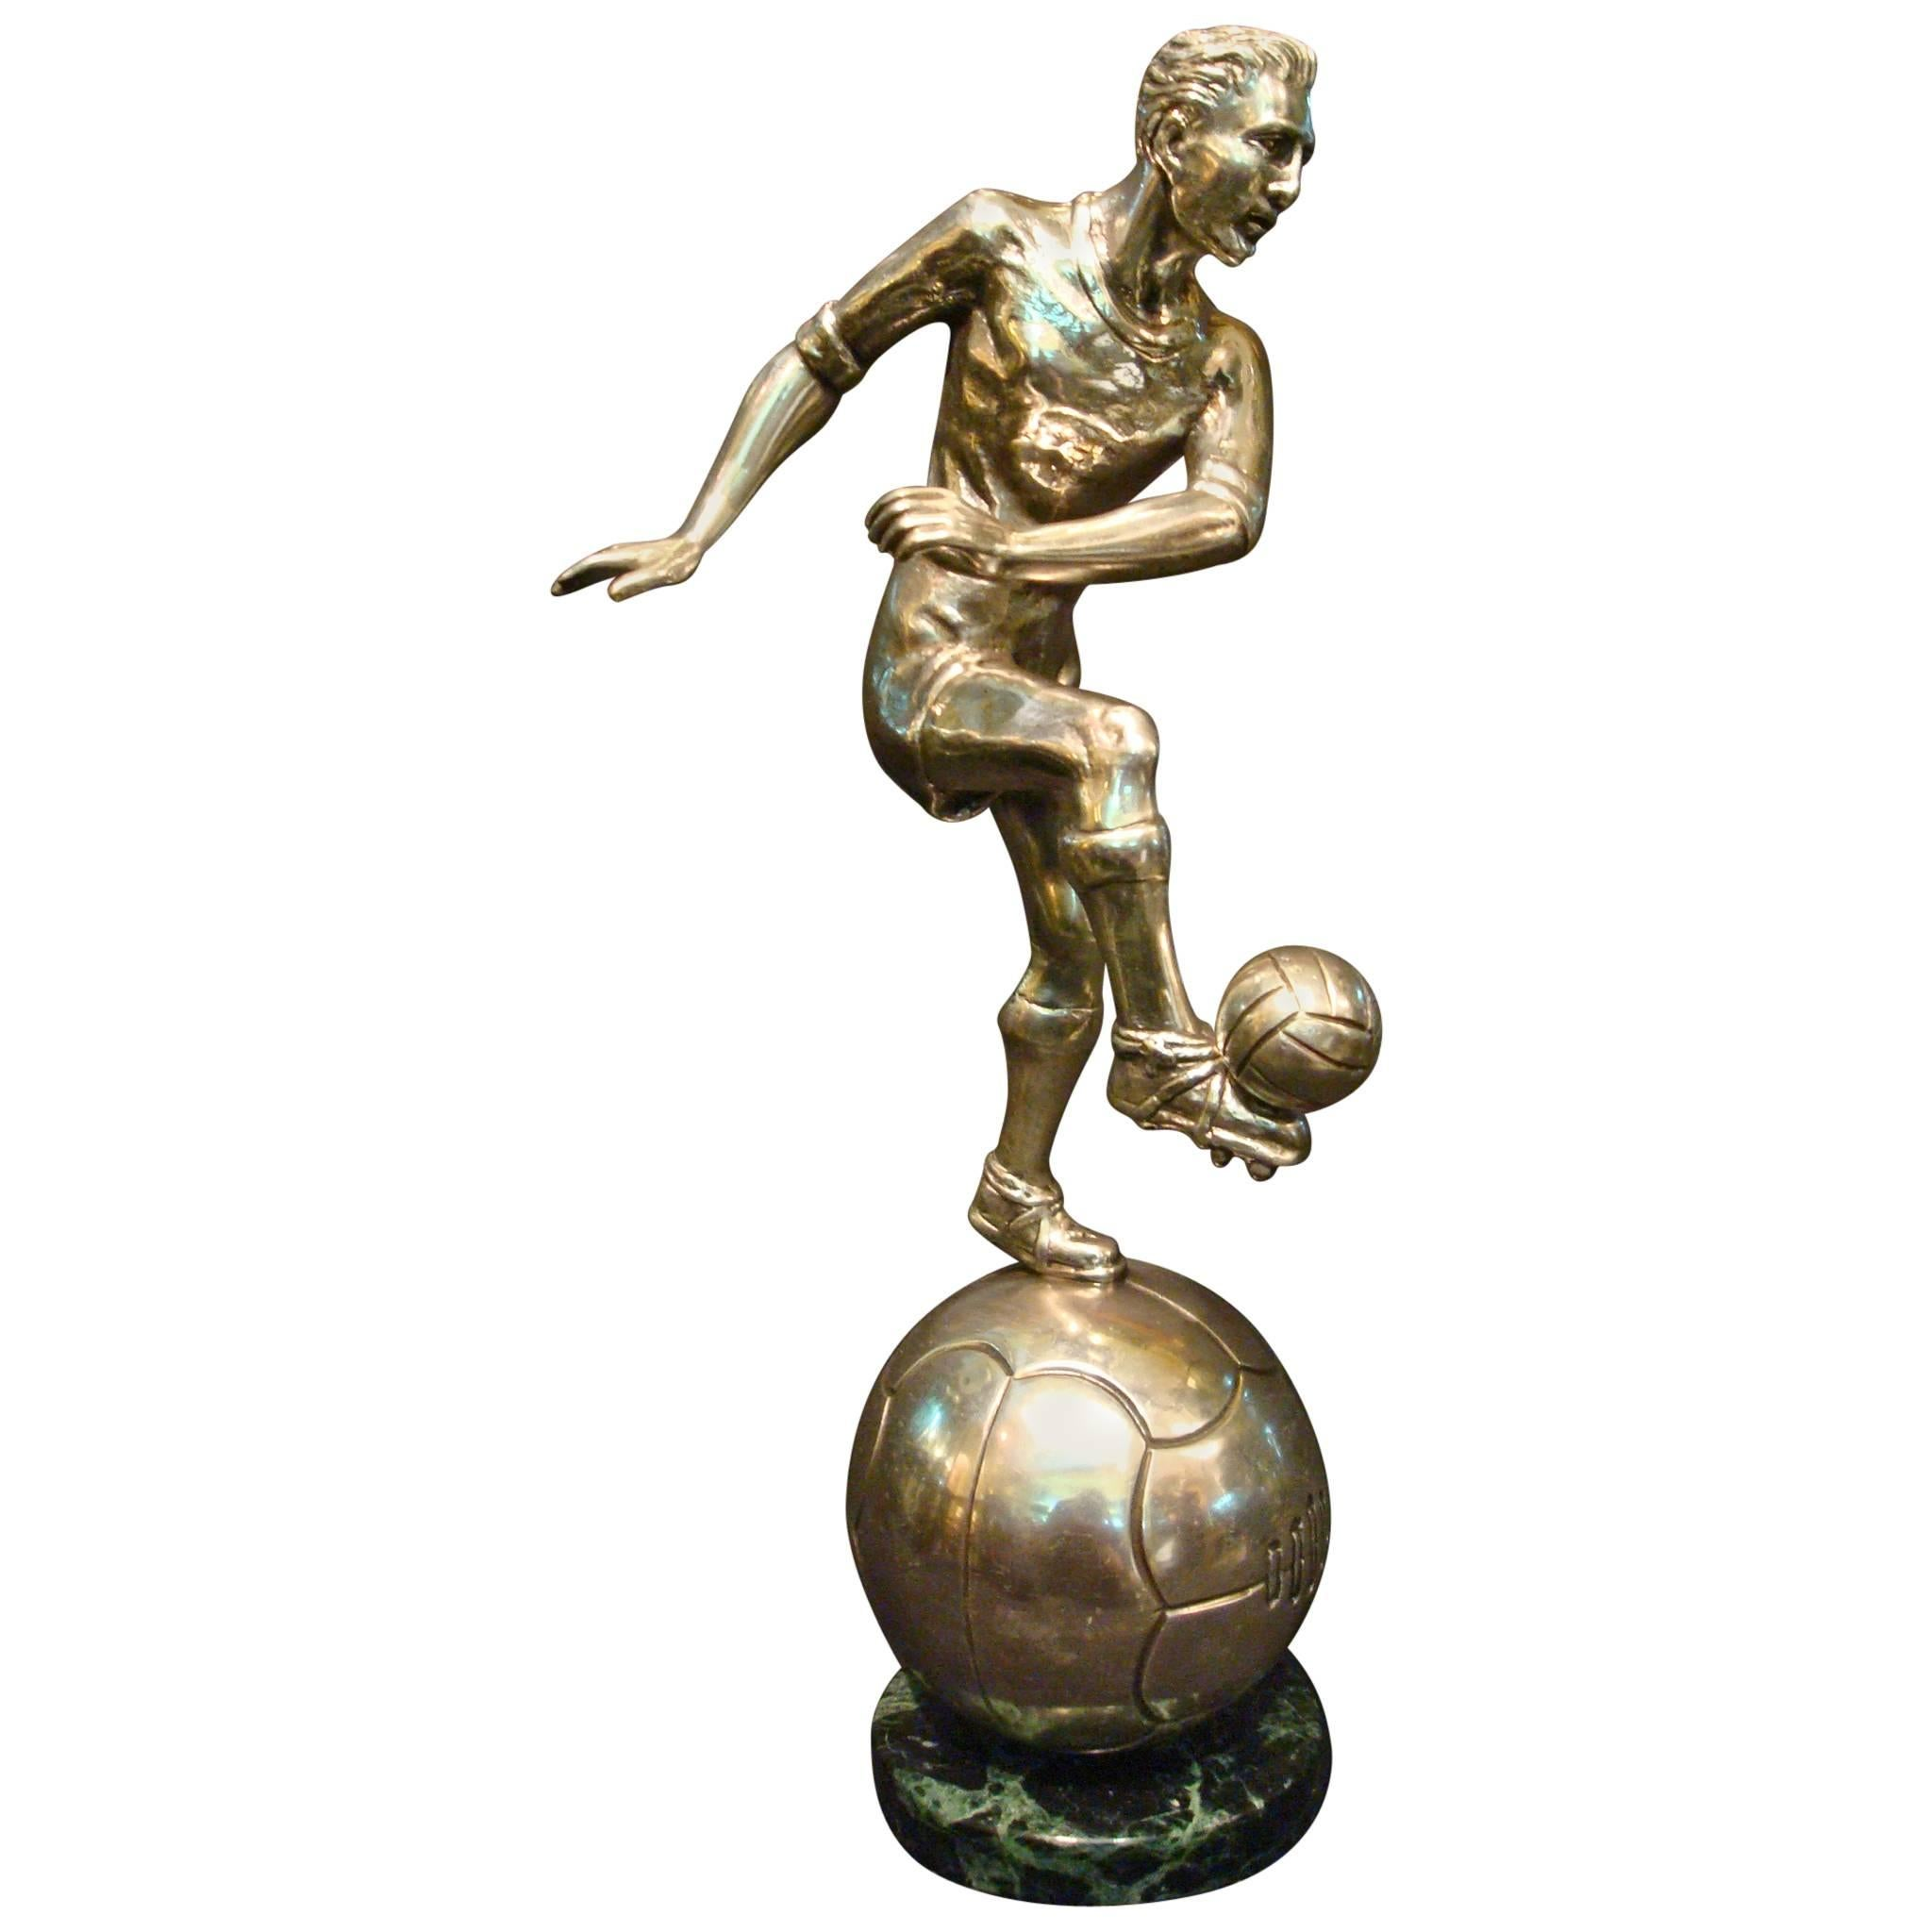 Football / Soccer Trophy Player Italian Bronze Sculpture, 1930s